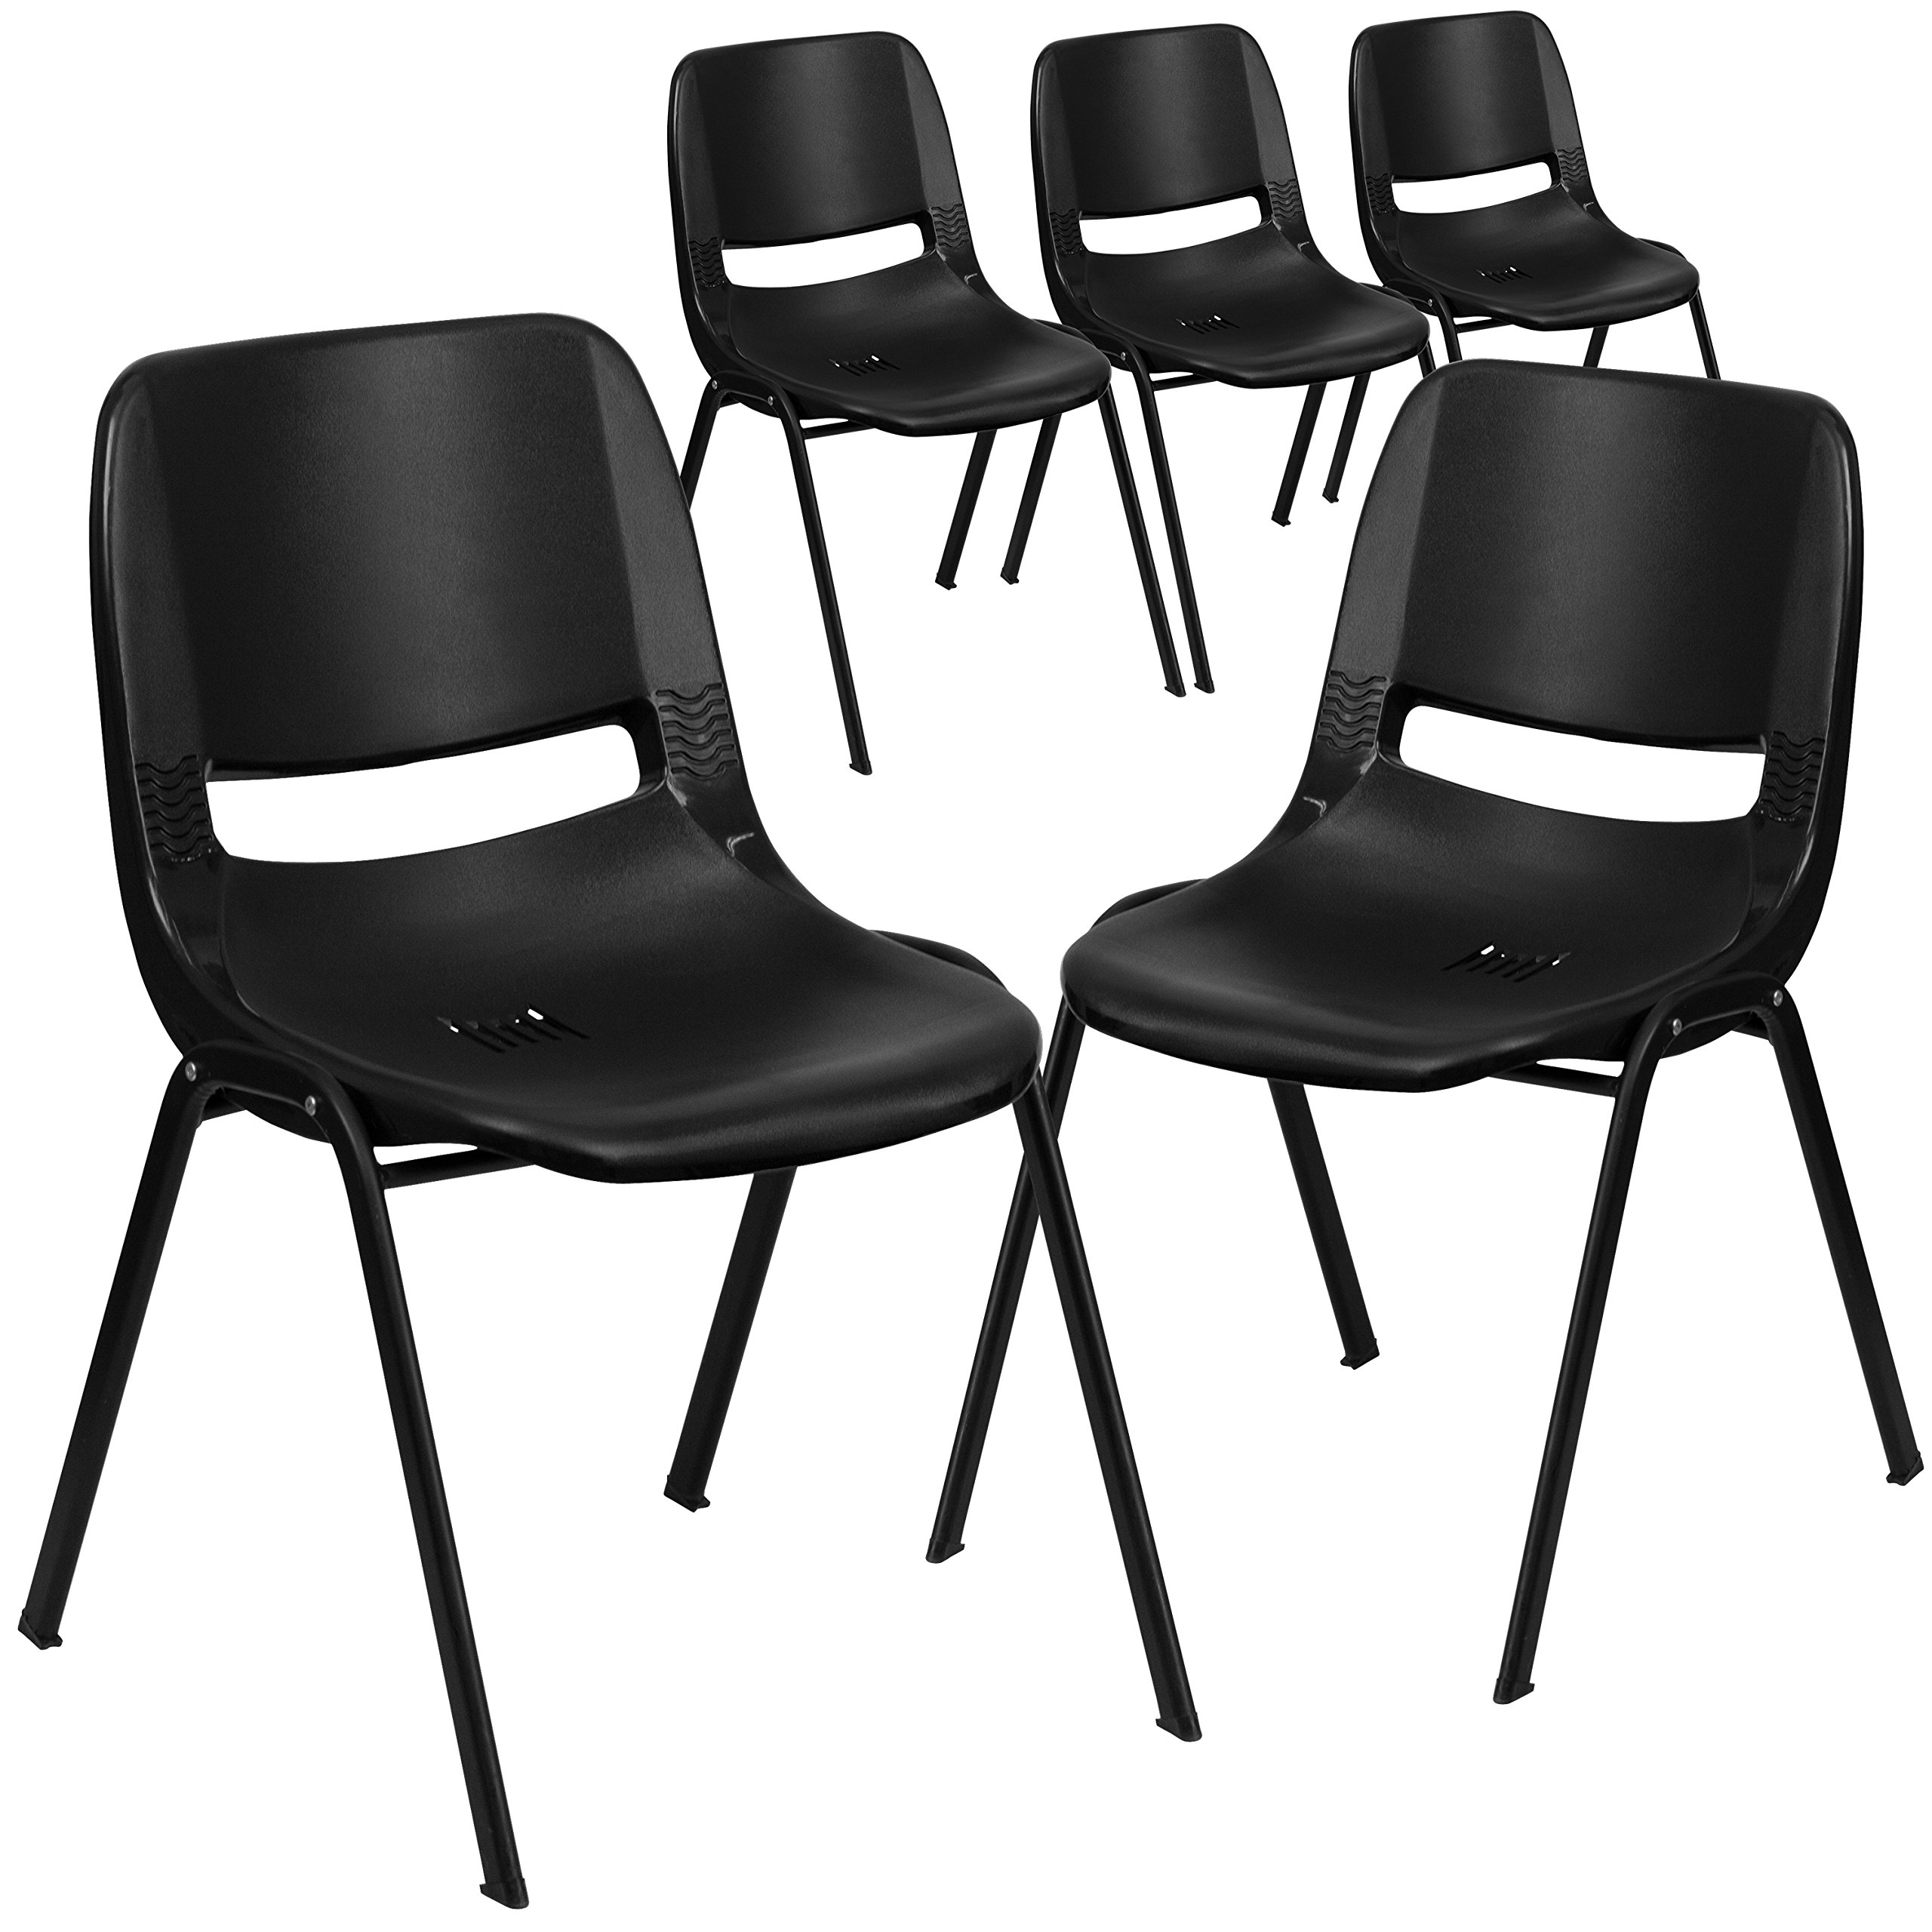 Flash Furniture 5 Pk. HERCULES Series 440 lb. Capacity Kid's Black Ergonomic Shell Stack Chair with Black Frame and 12'' Seat Height by Flash Furniture